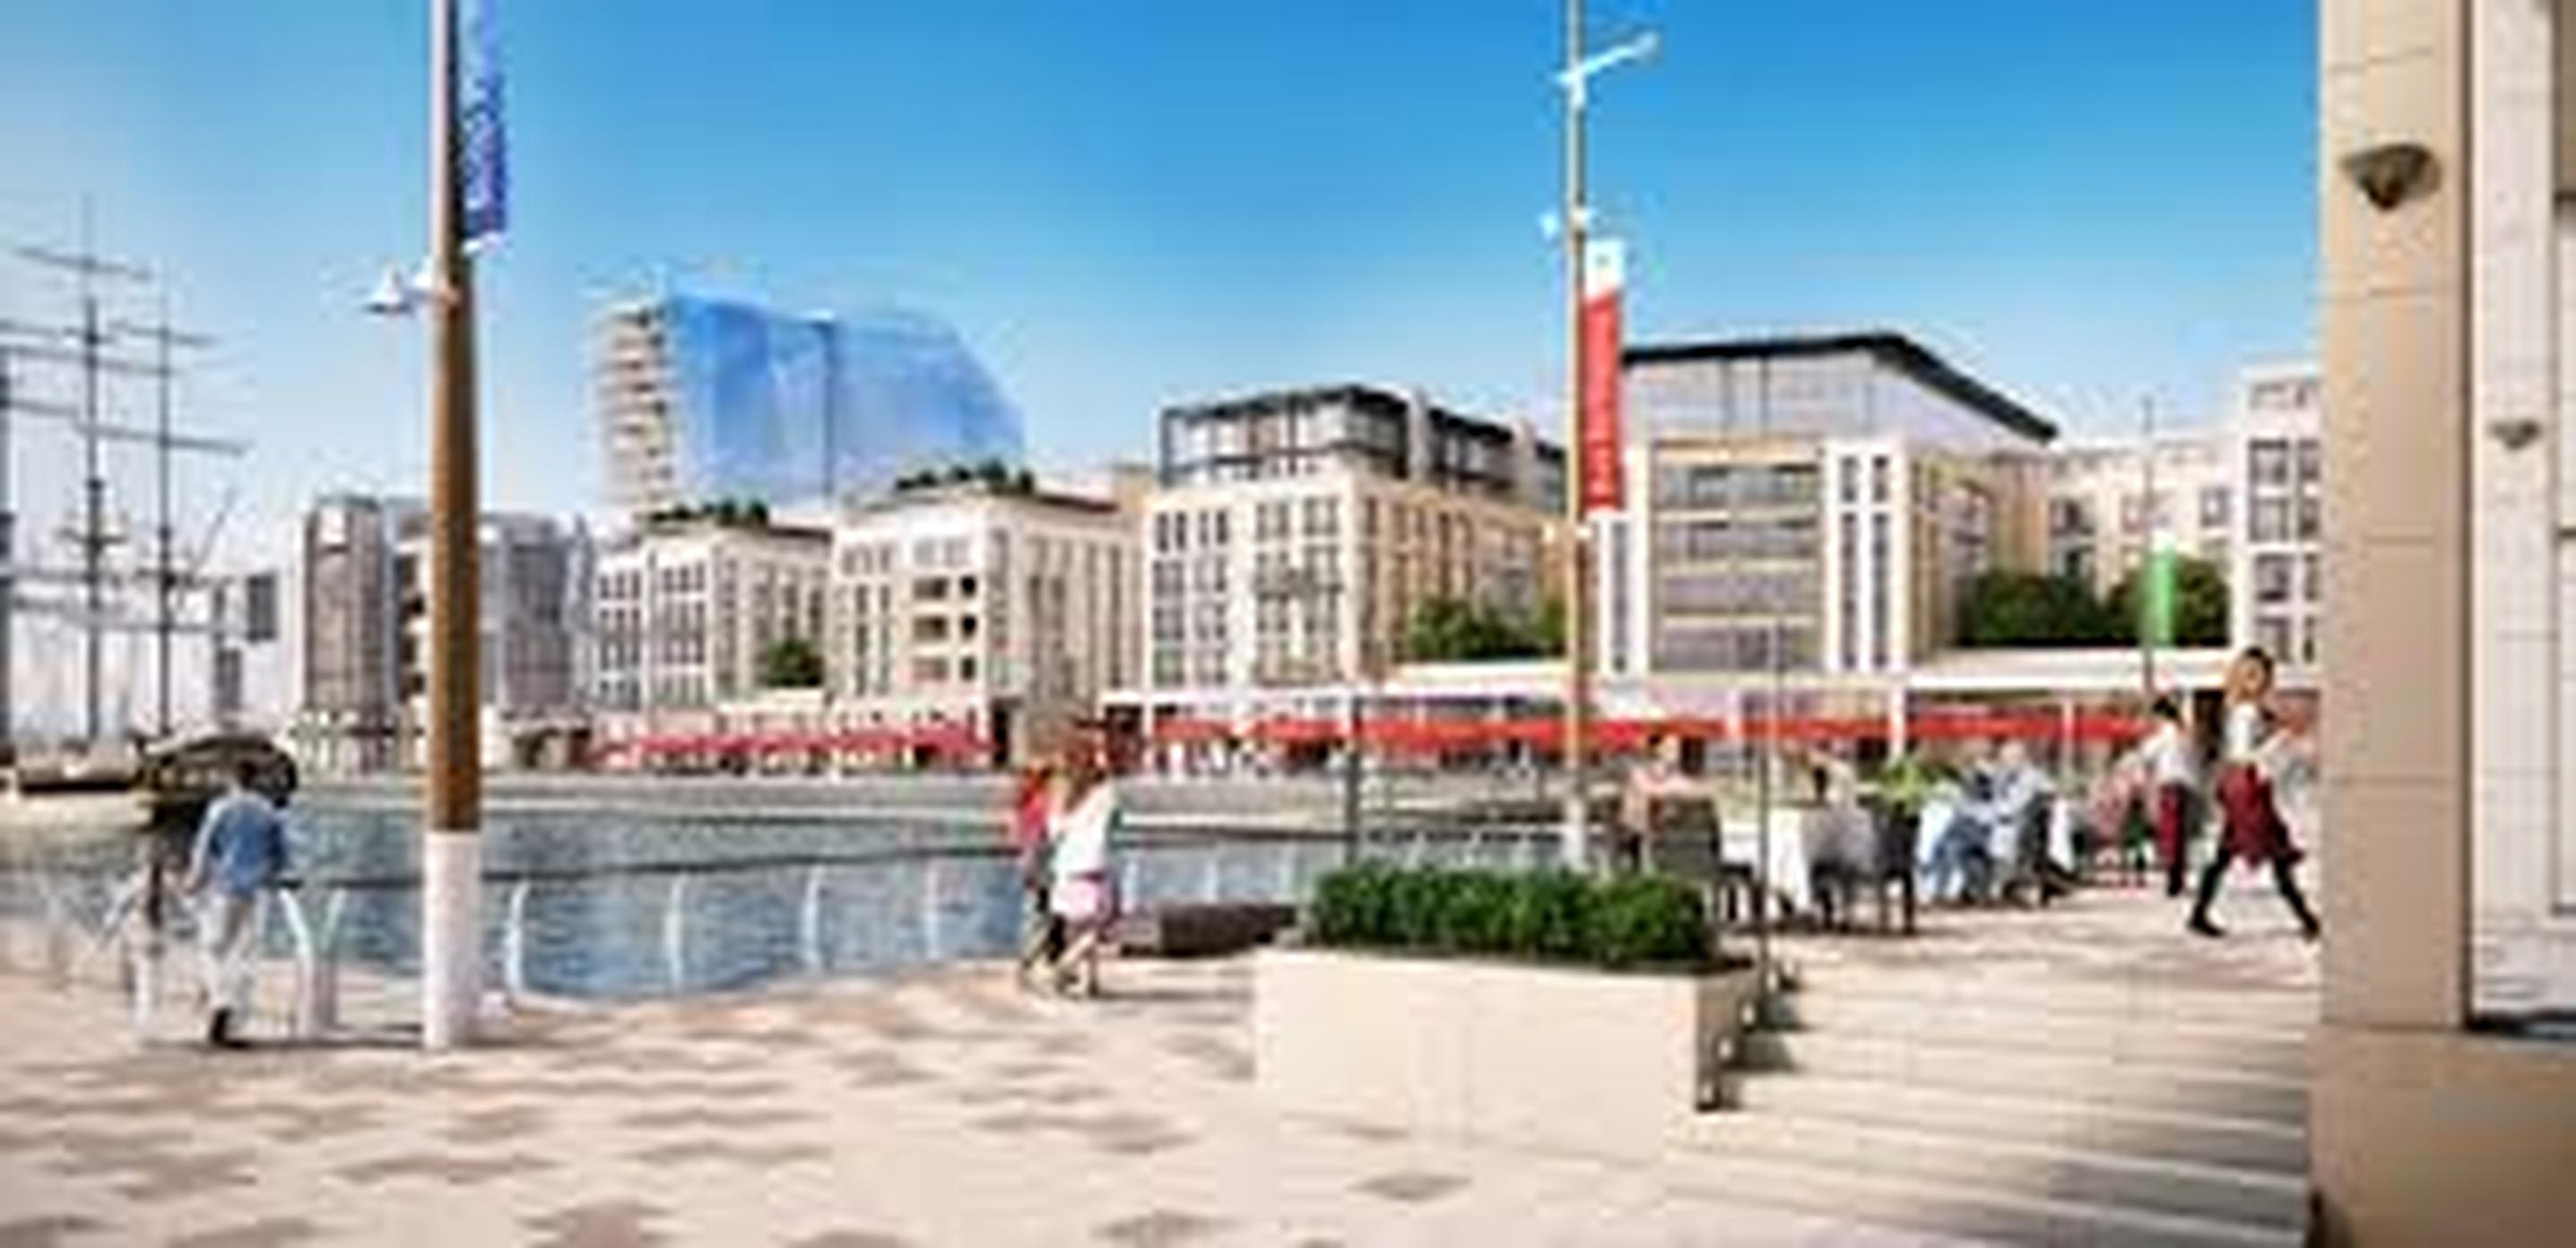 The planned Royal Pier development in Southampton, a city which has plans to clean up its air quality through improved planning policies